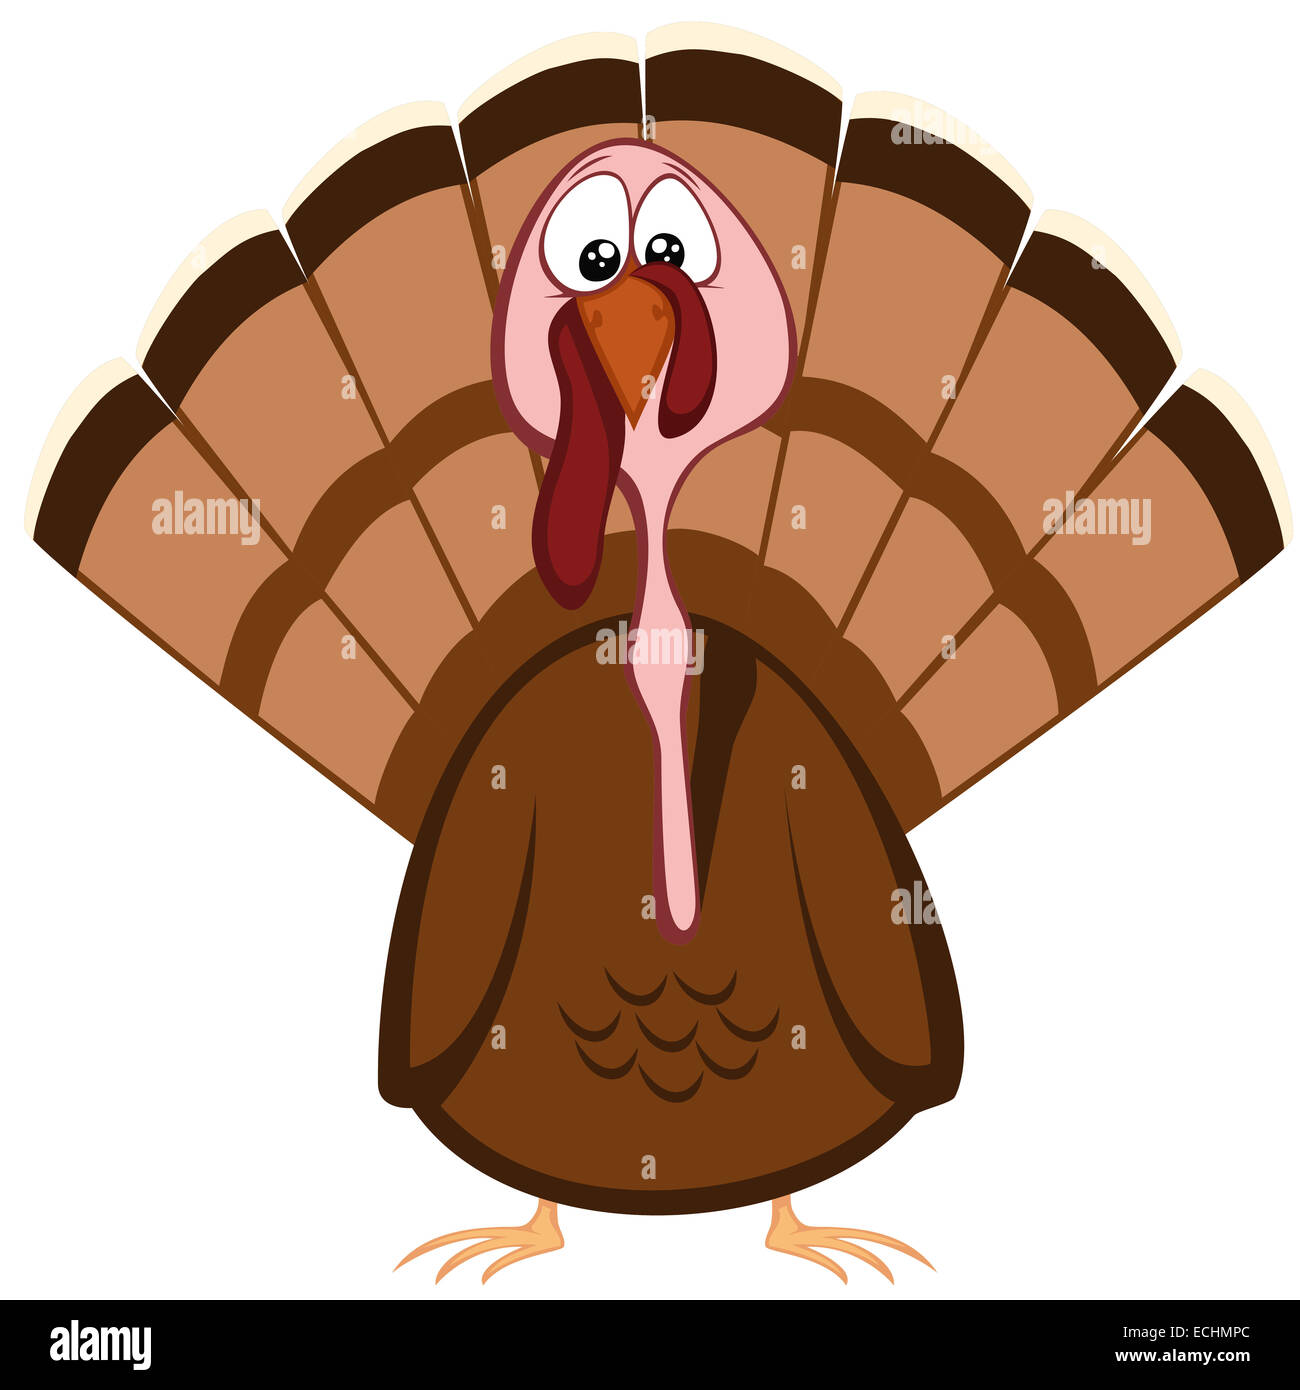 Turkey Character Thanksgiving Icon Stockfotos & Turkey Character ...